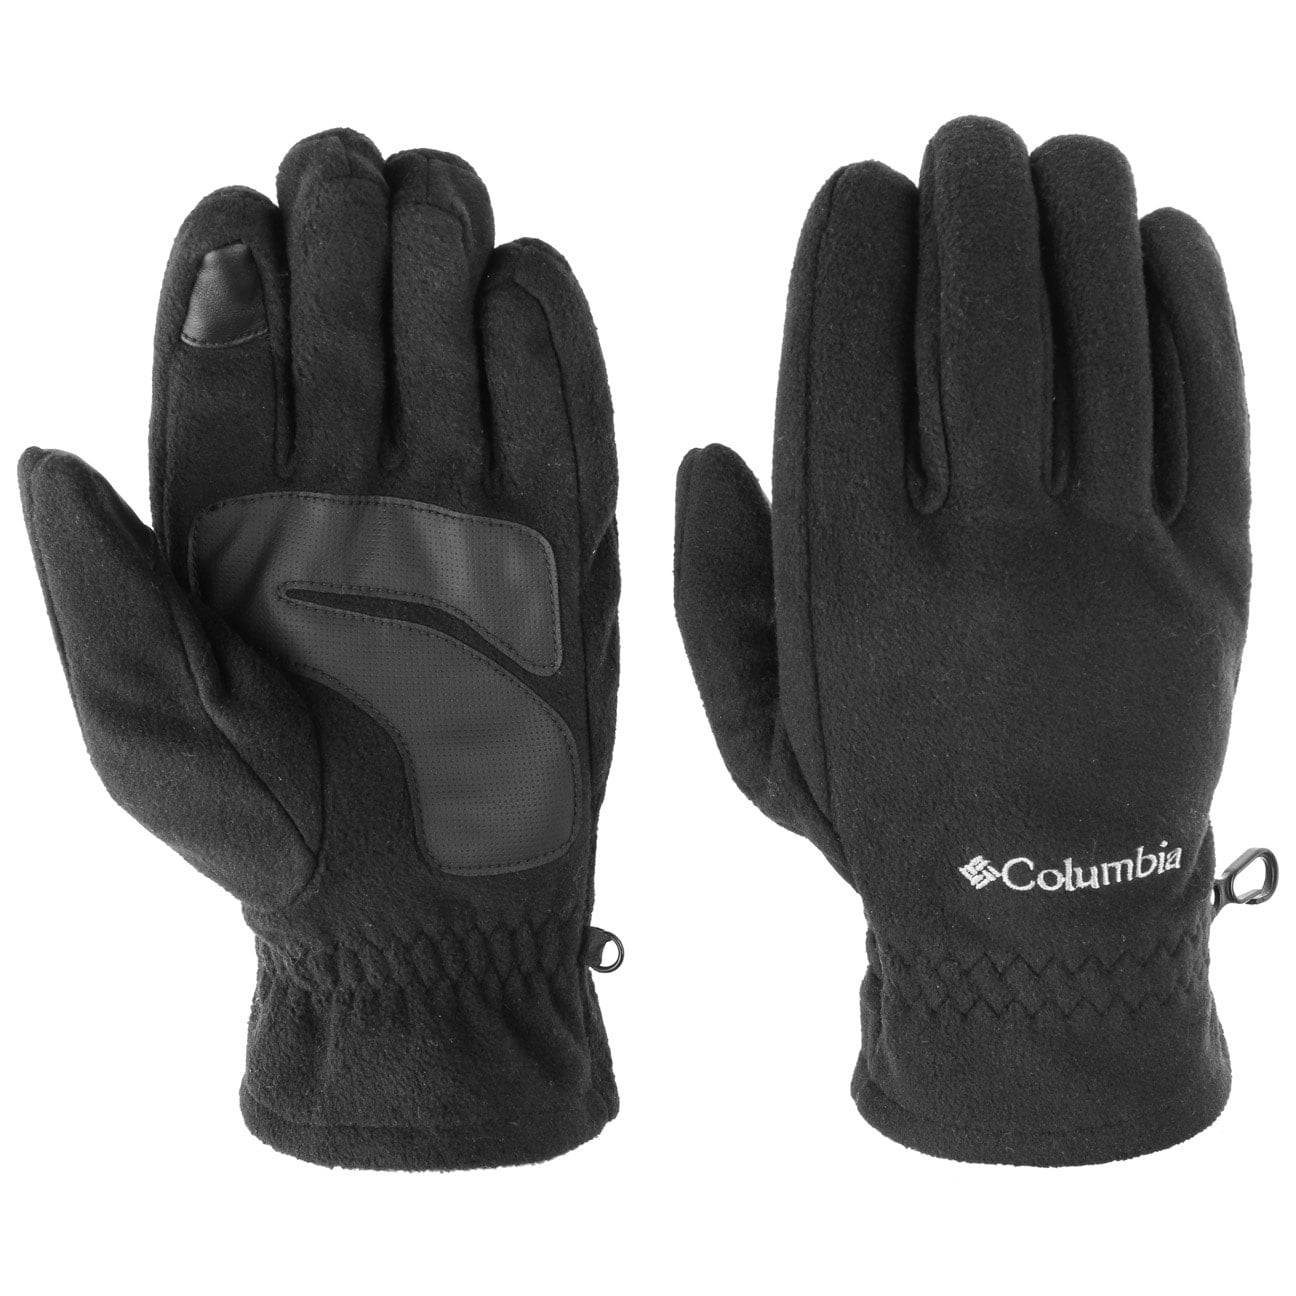 Columbia Thermarator Womens Gloves by Columbia Col.  black, size 8 HS